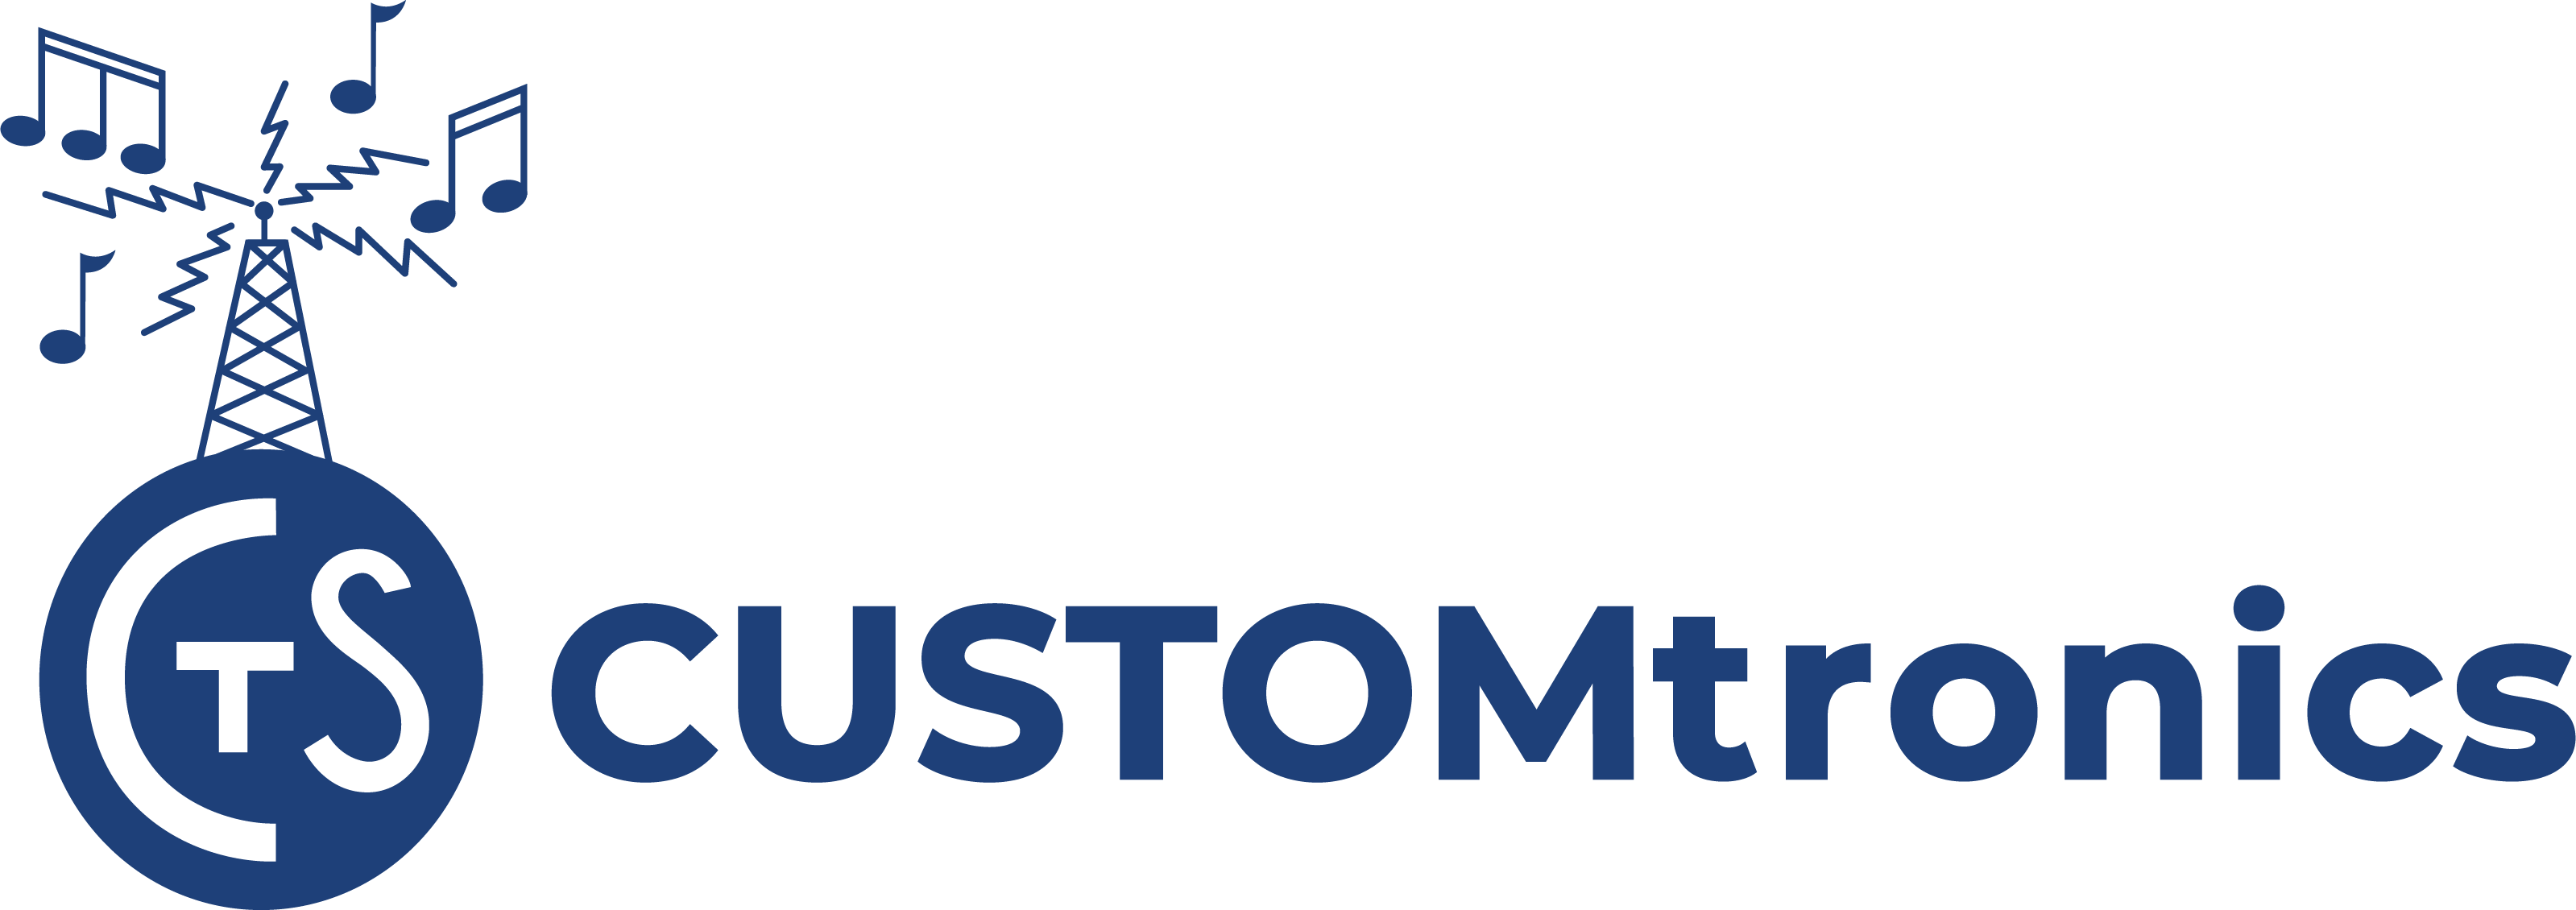 Customtronics Name and Logo blue